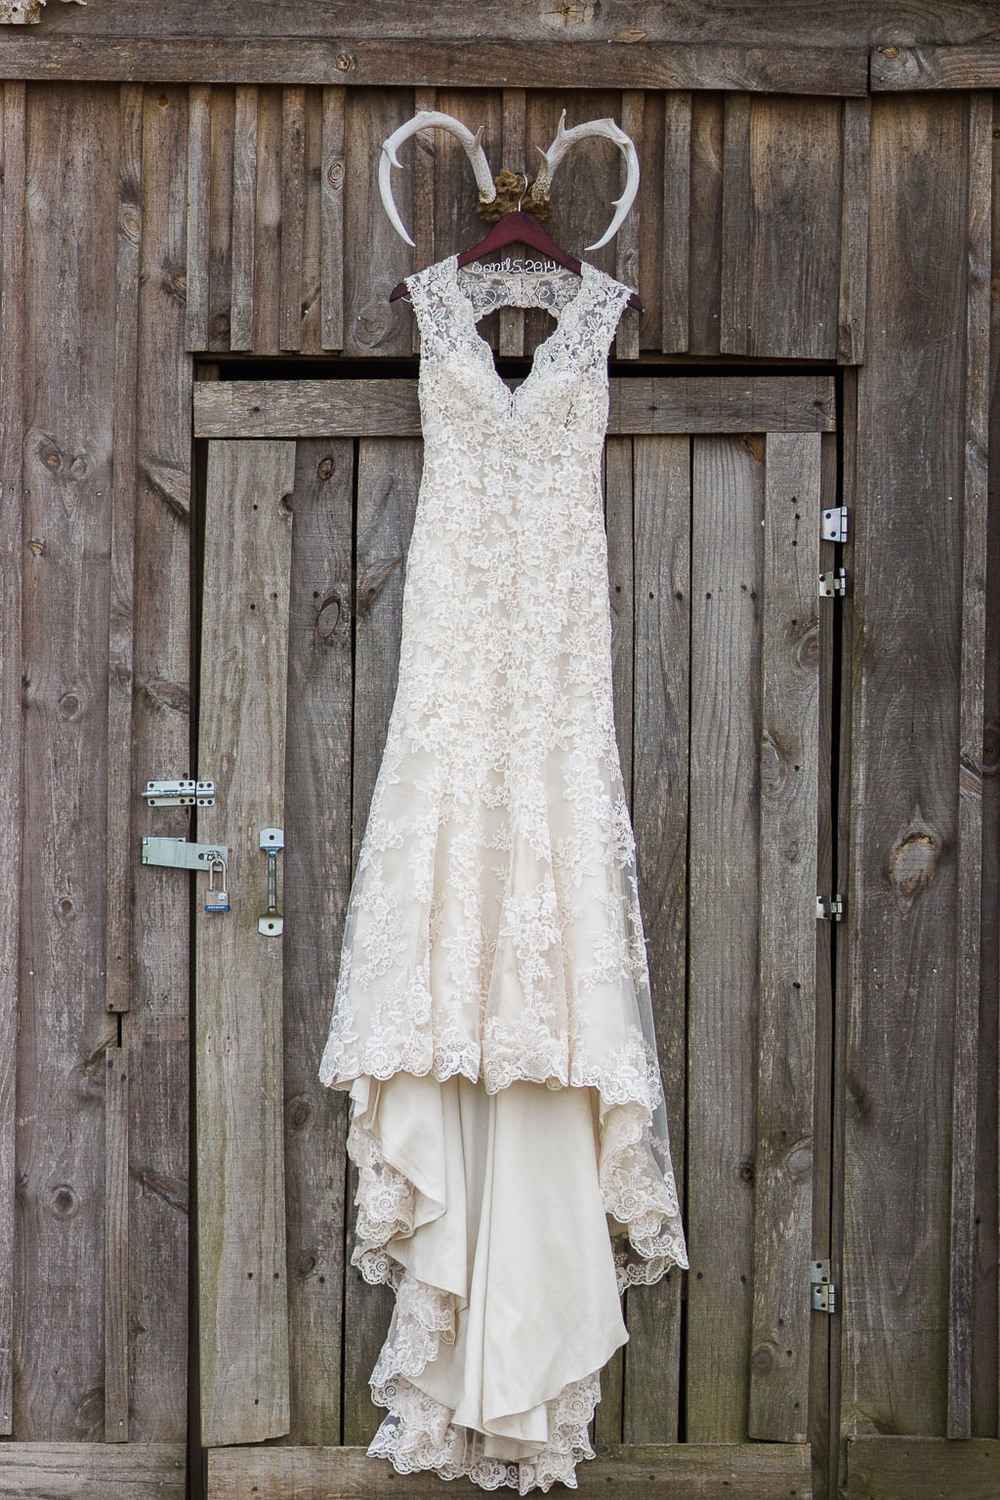 Rustic Shabby chic lace gown with a sweetheart neckline barn wedding